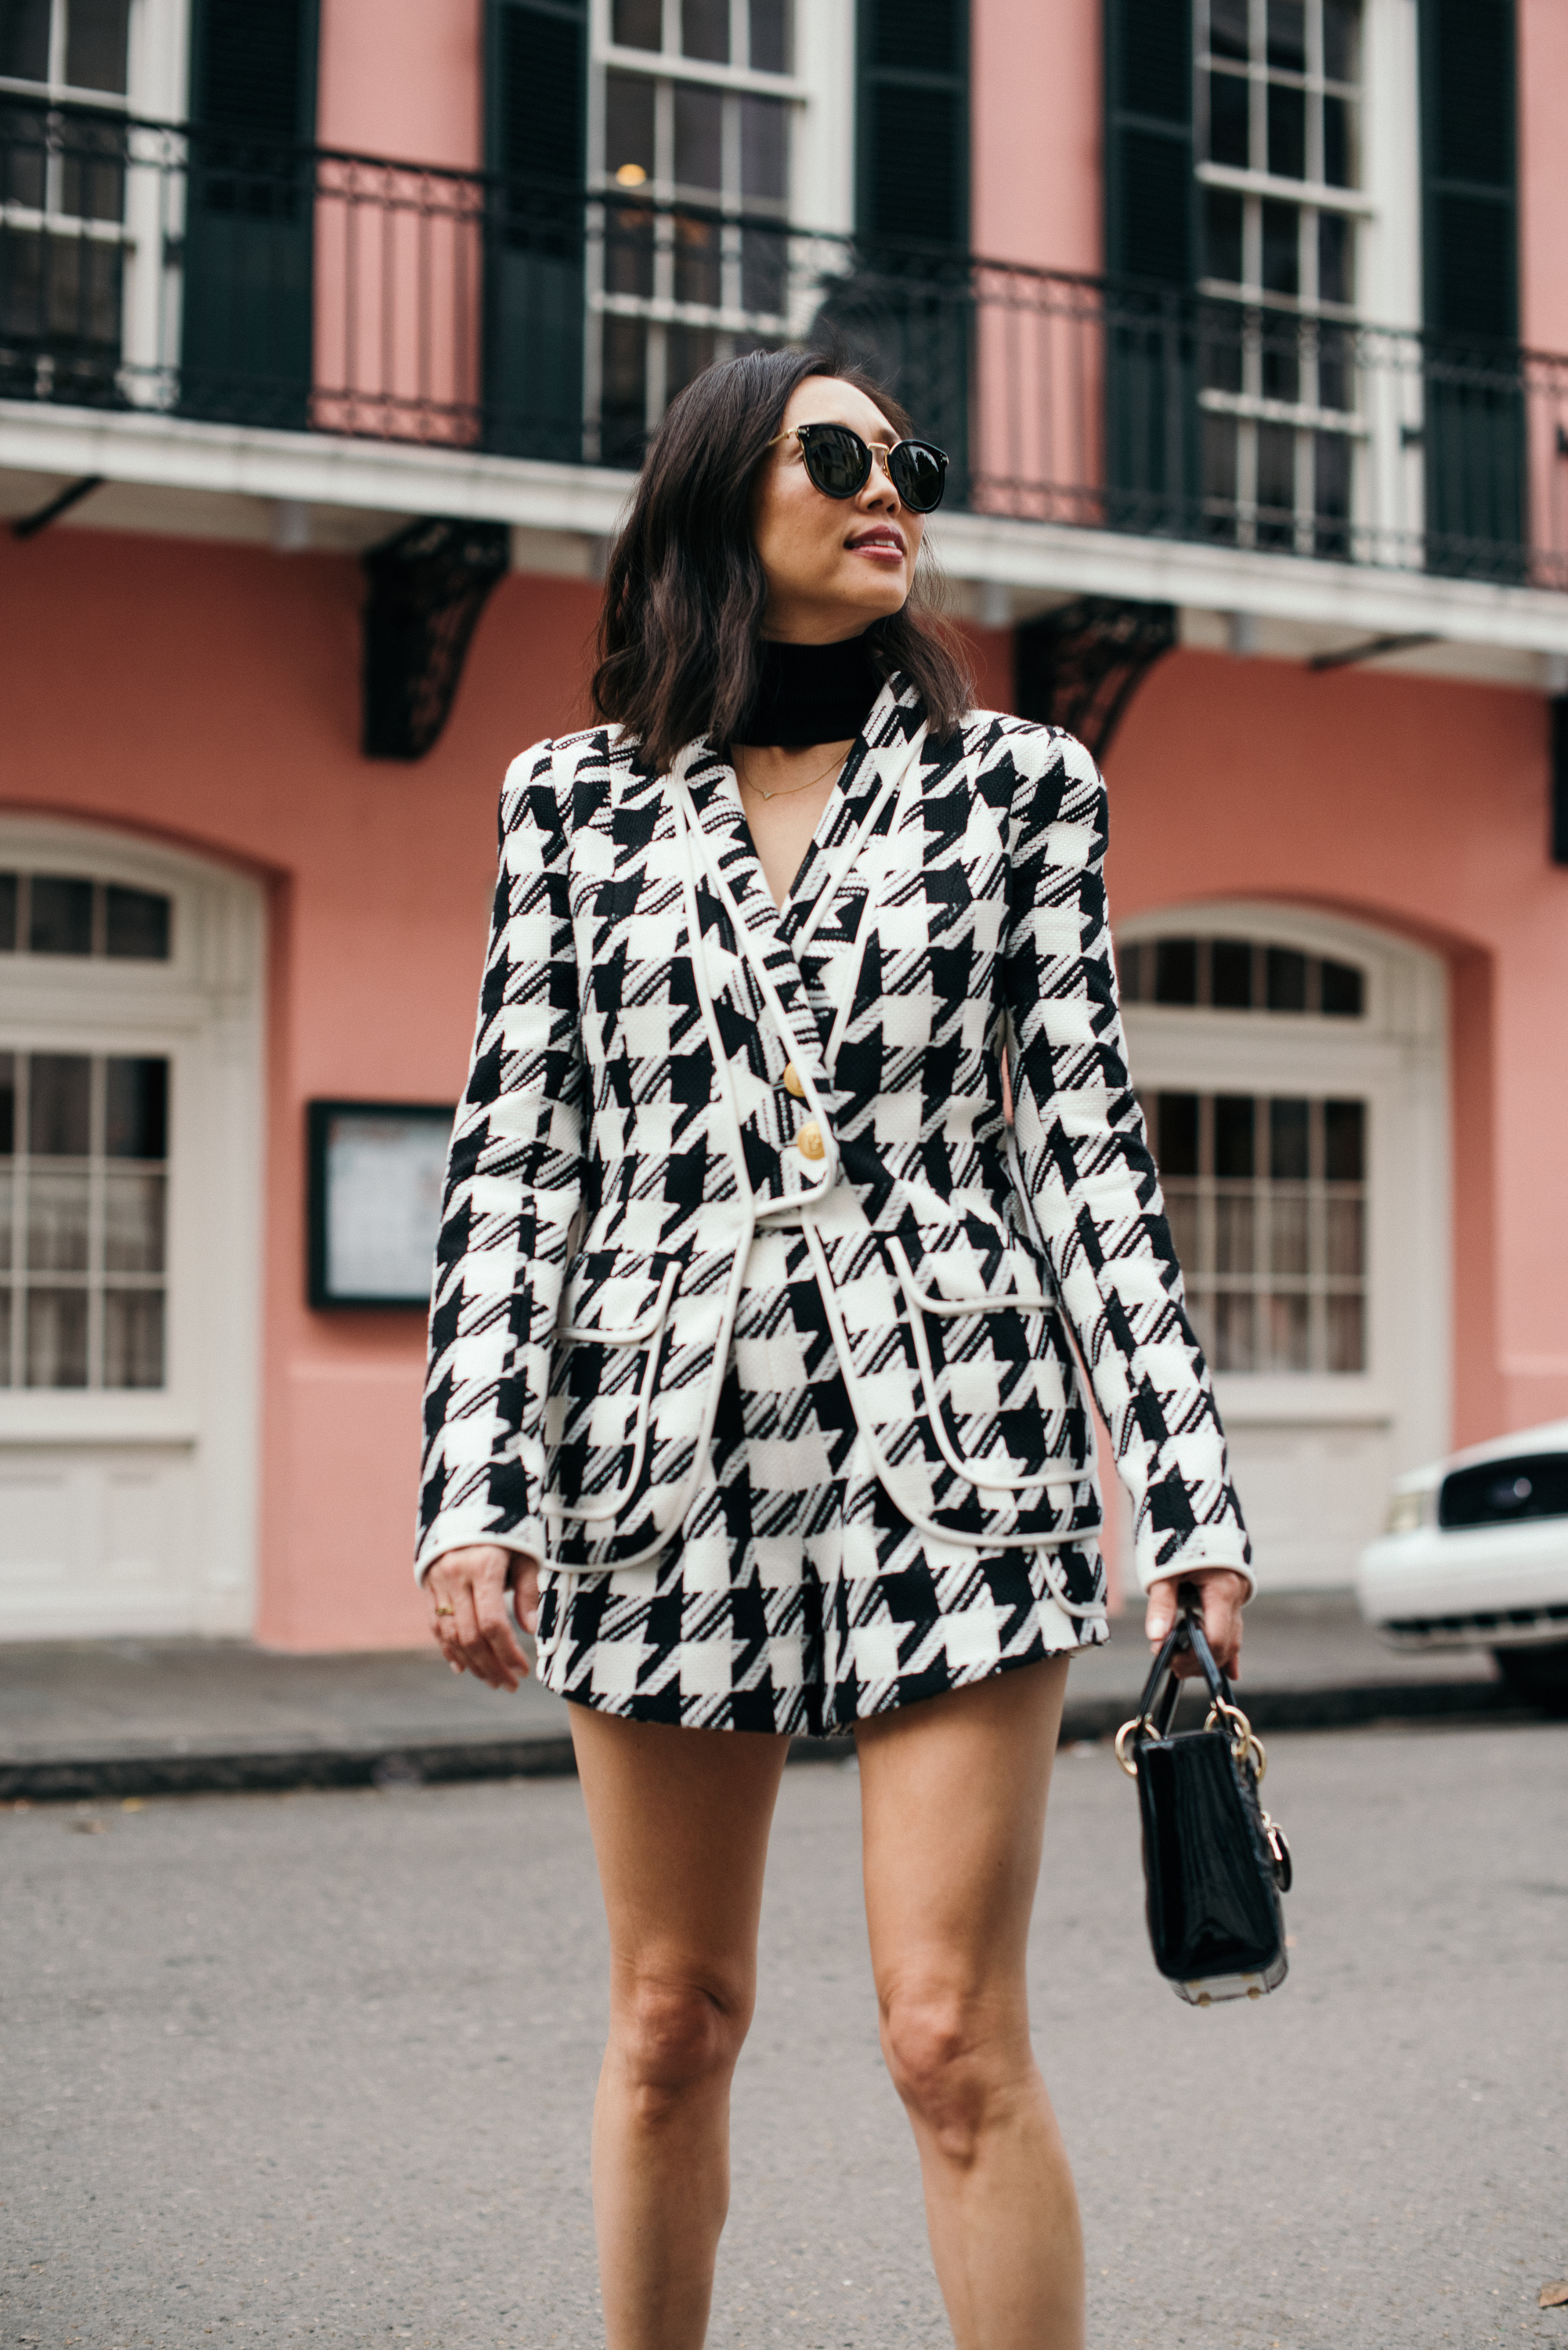 Shorts + blazer: balmain, bag: dior, boots: gucci, top: cushnie